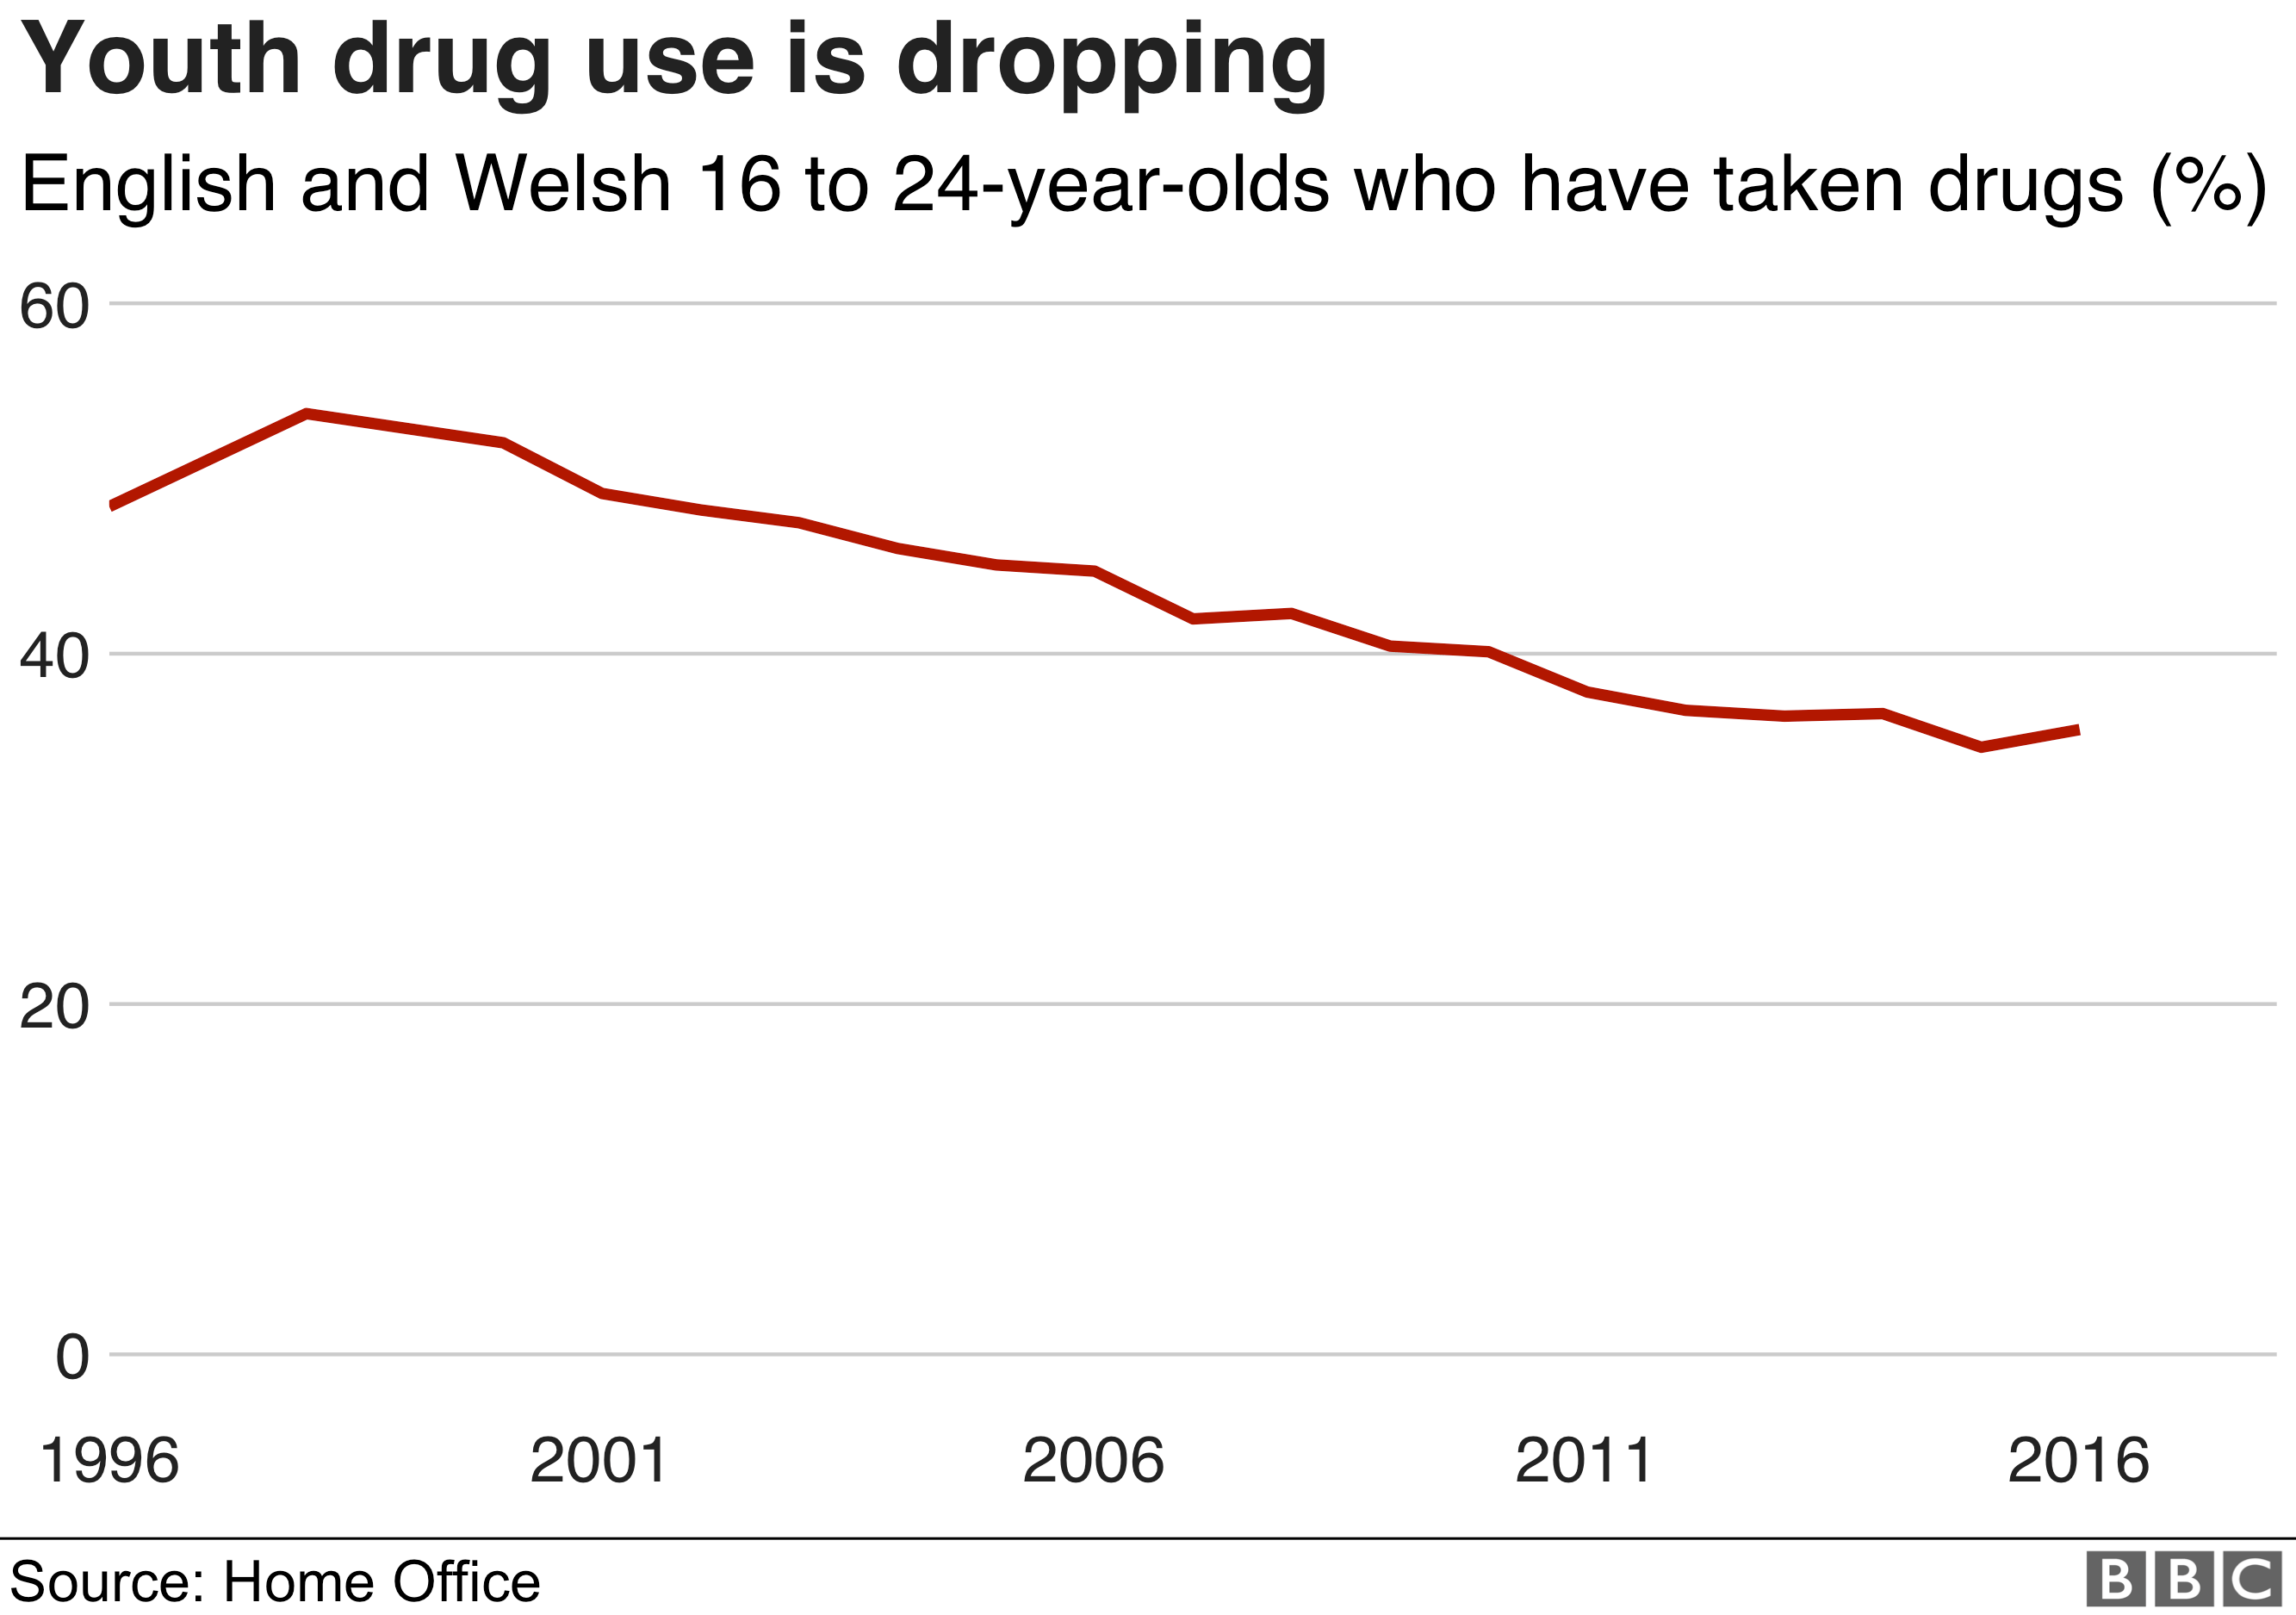 Chart showing a drop in youth drug use